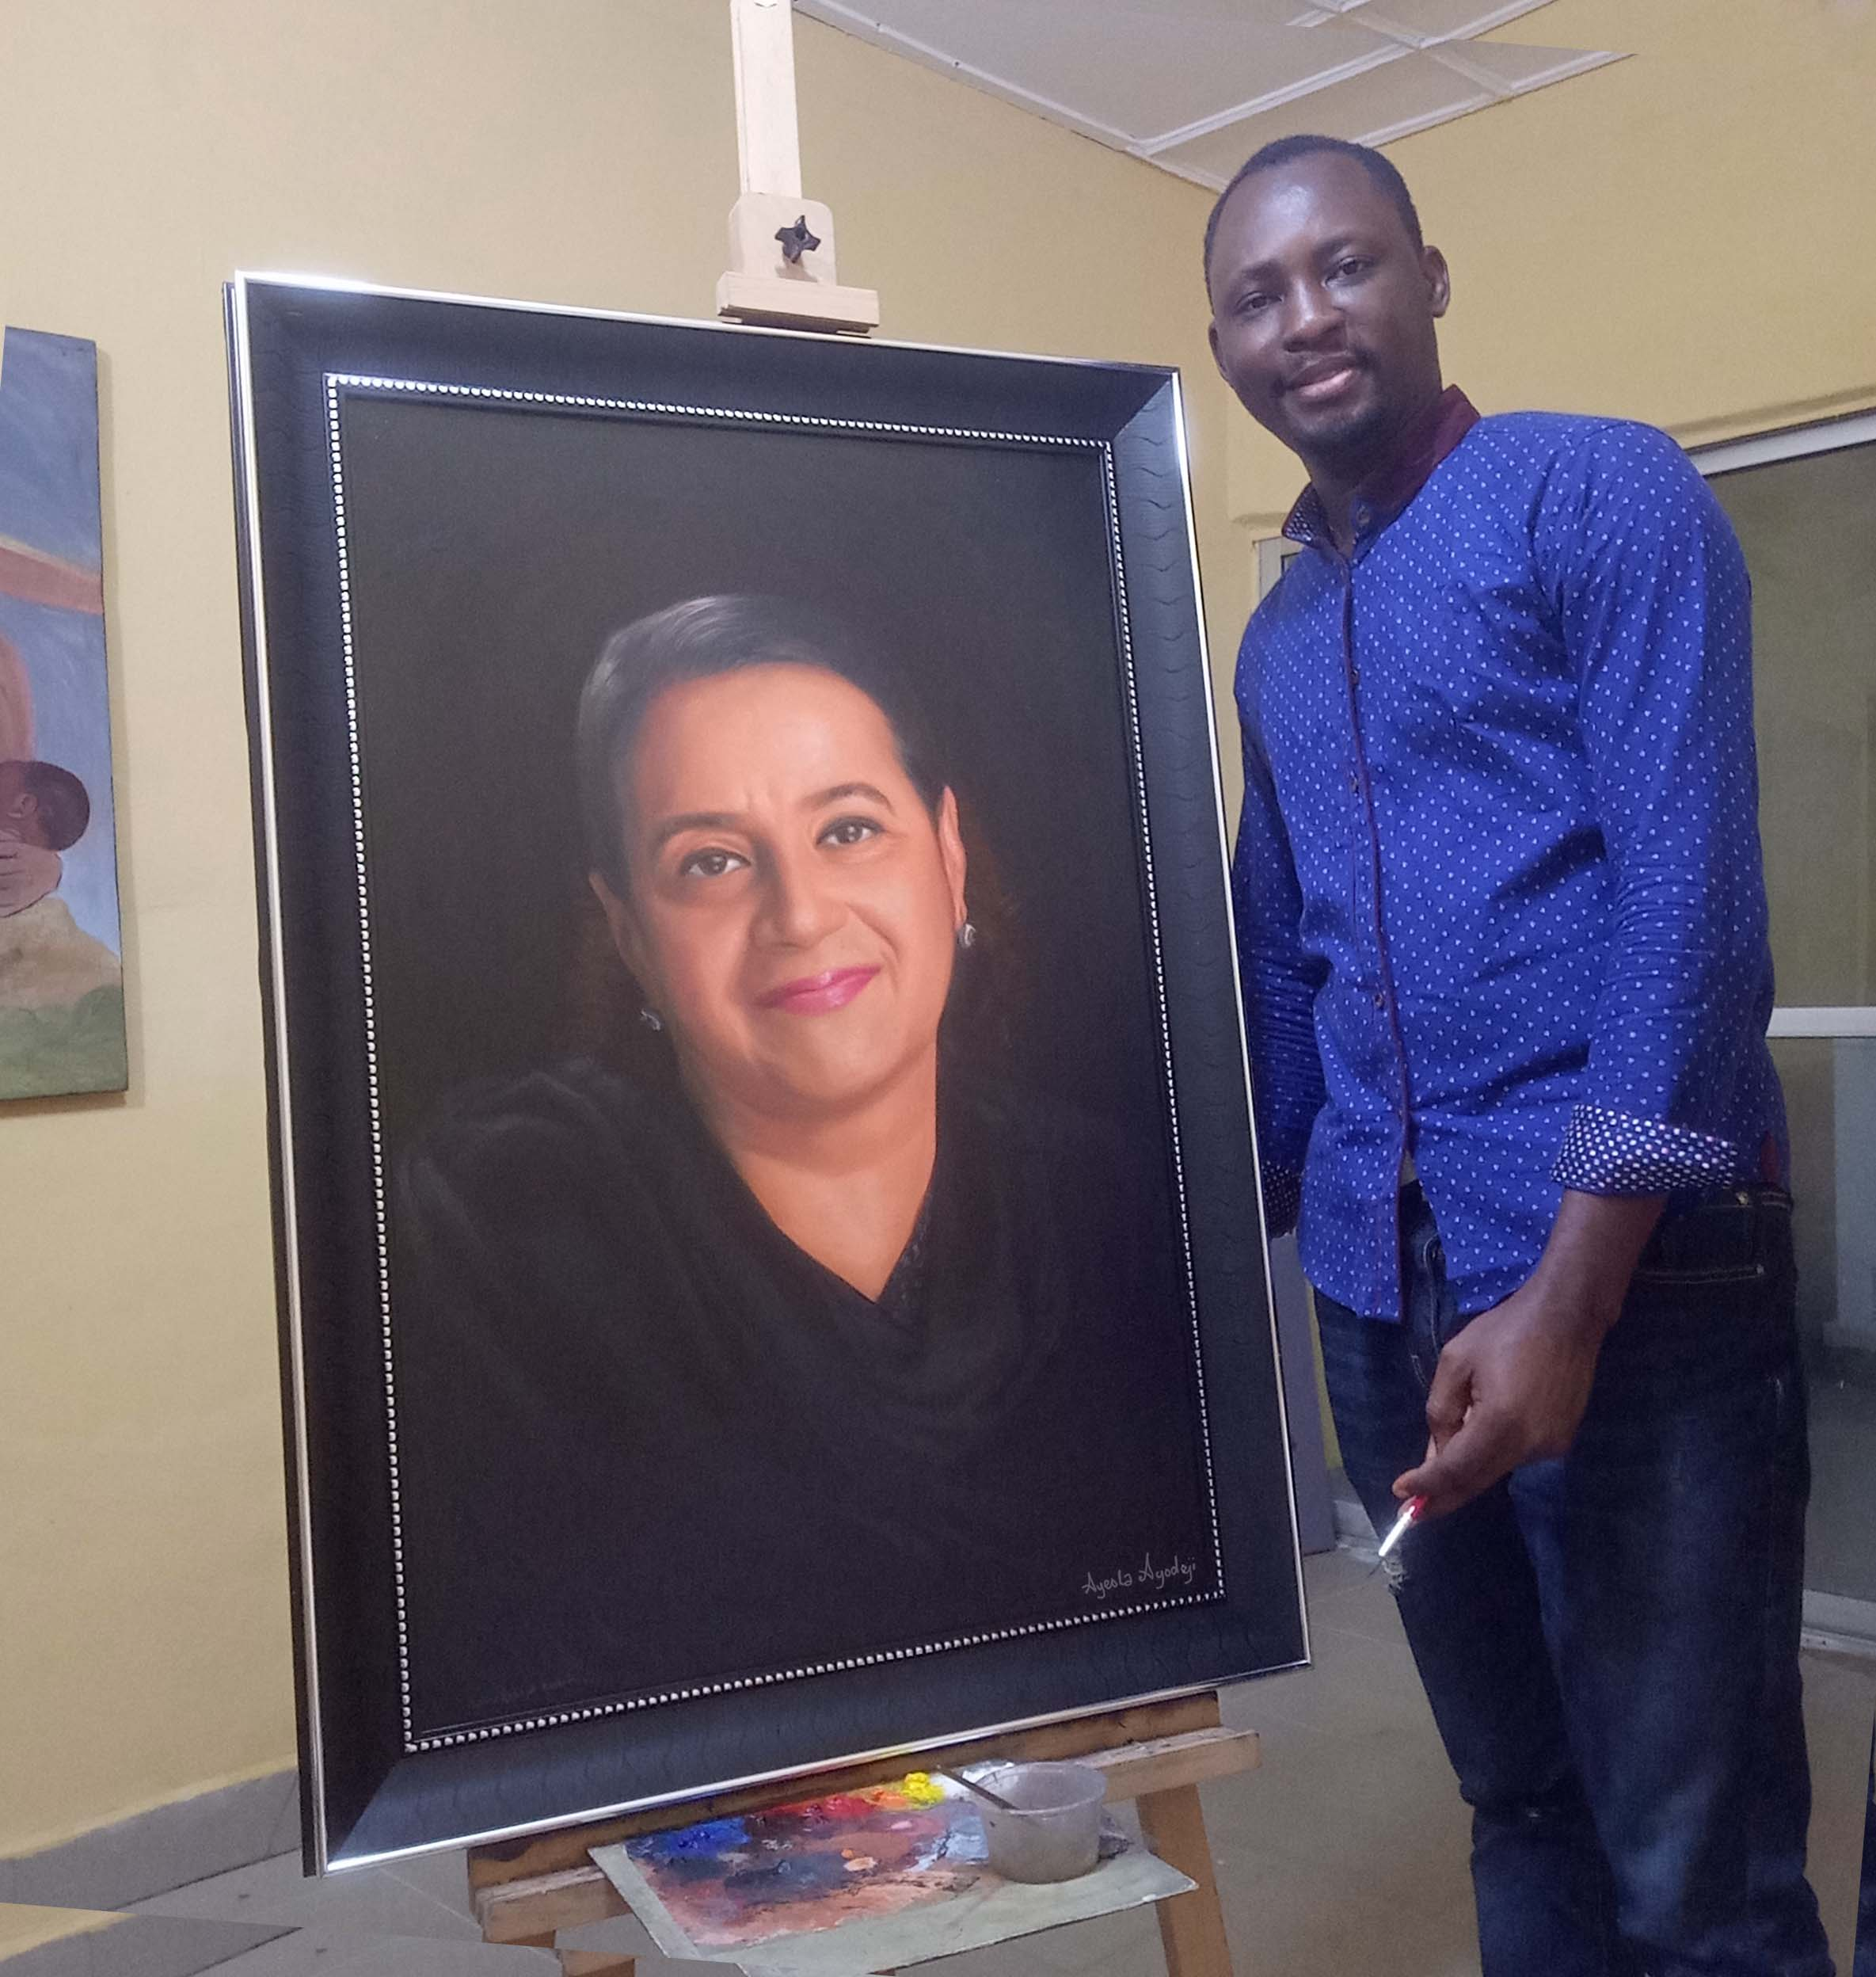 size 24 x 36 inches portrait painting by ayeola ayodeji